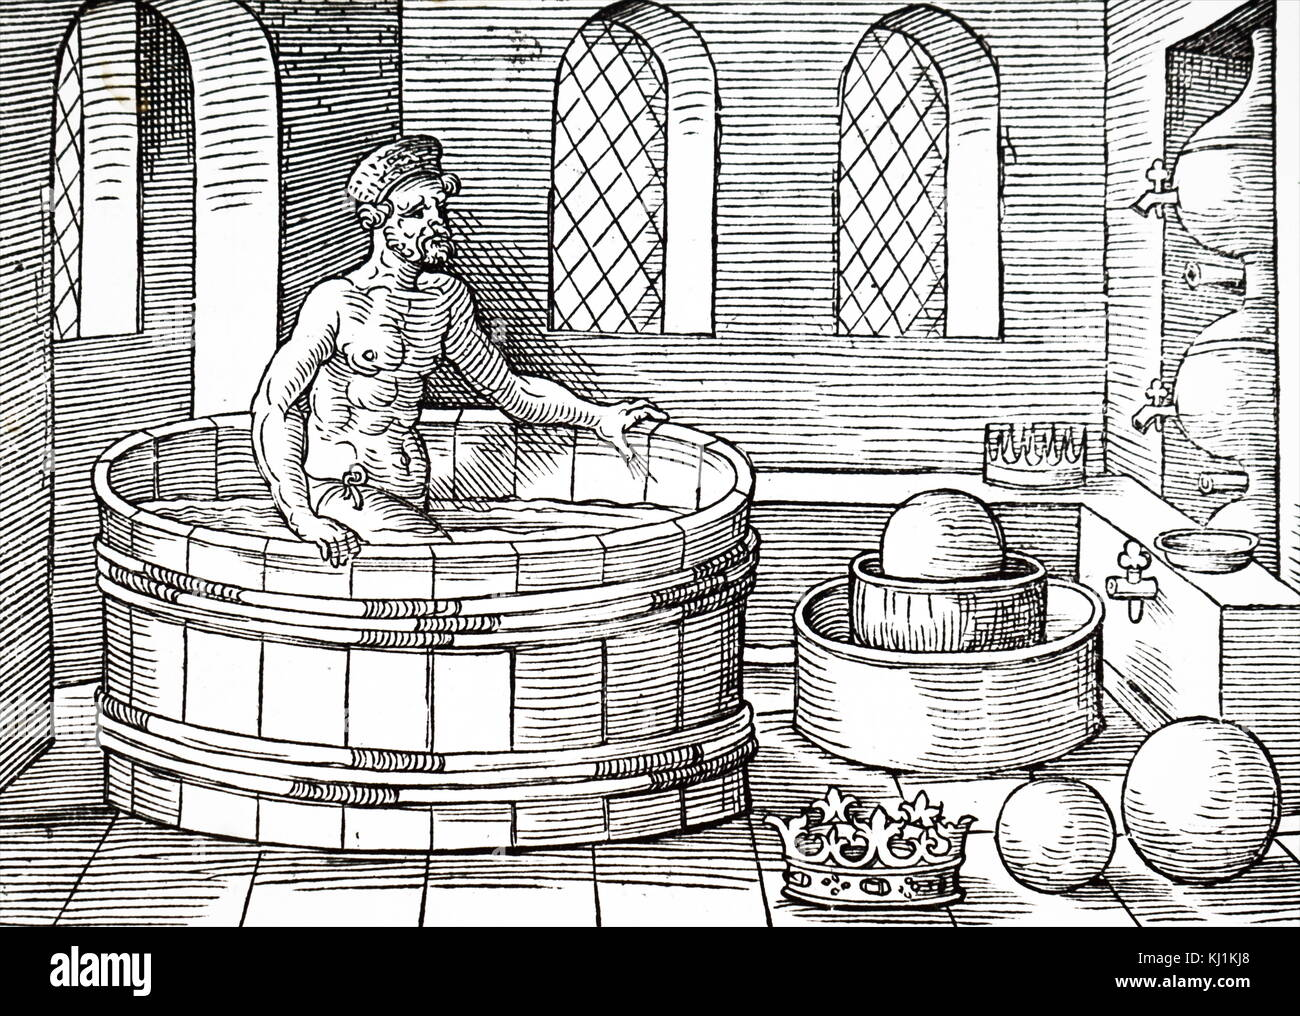 a history of archimedes the greek astronomer Another greek mathematician who studied at alexandria in the 3rd century bce was archimedes, although he was born, died and lived most of his life in syracuse, sicily (a hellenic greek colony in magna graecia.